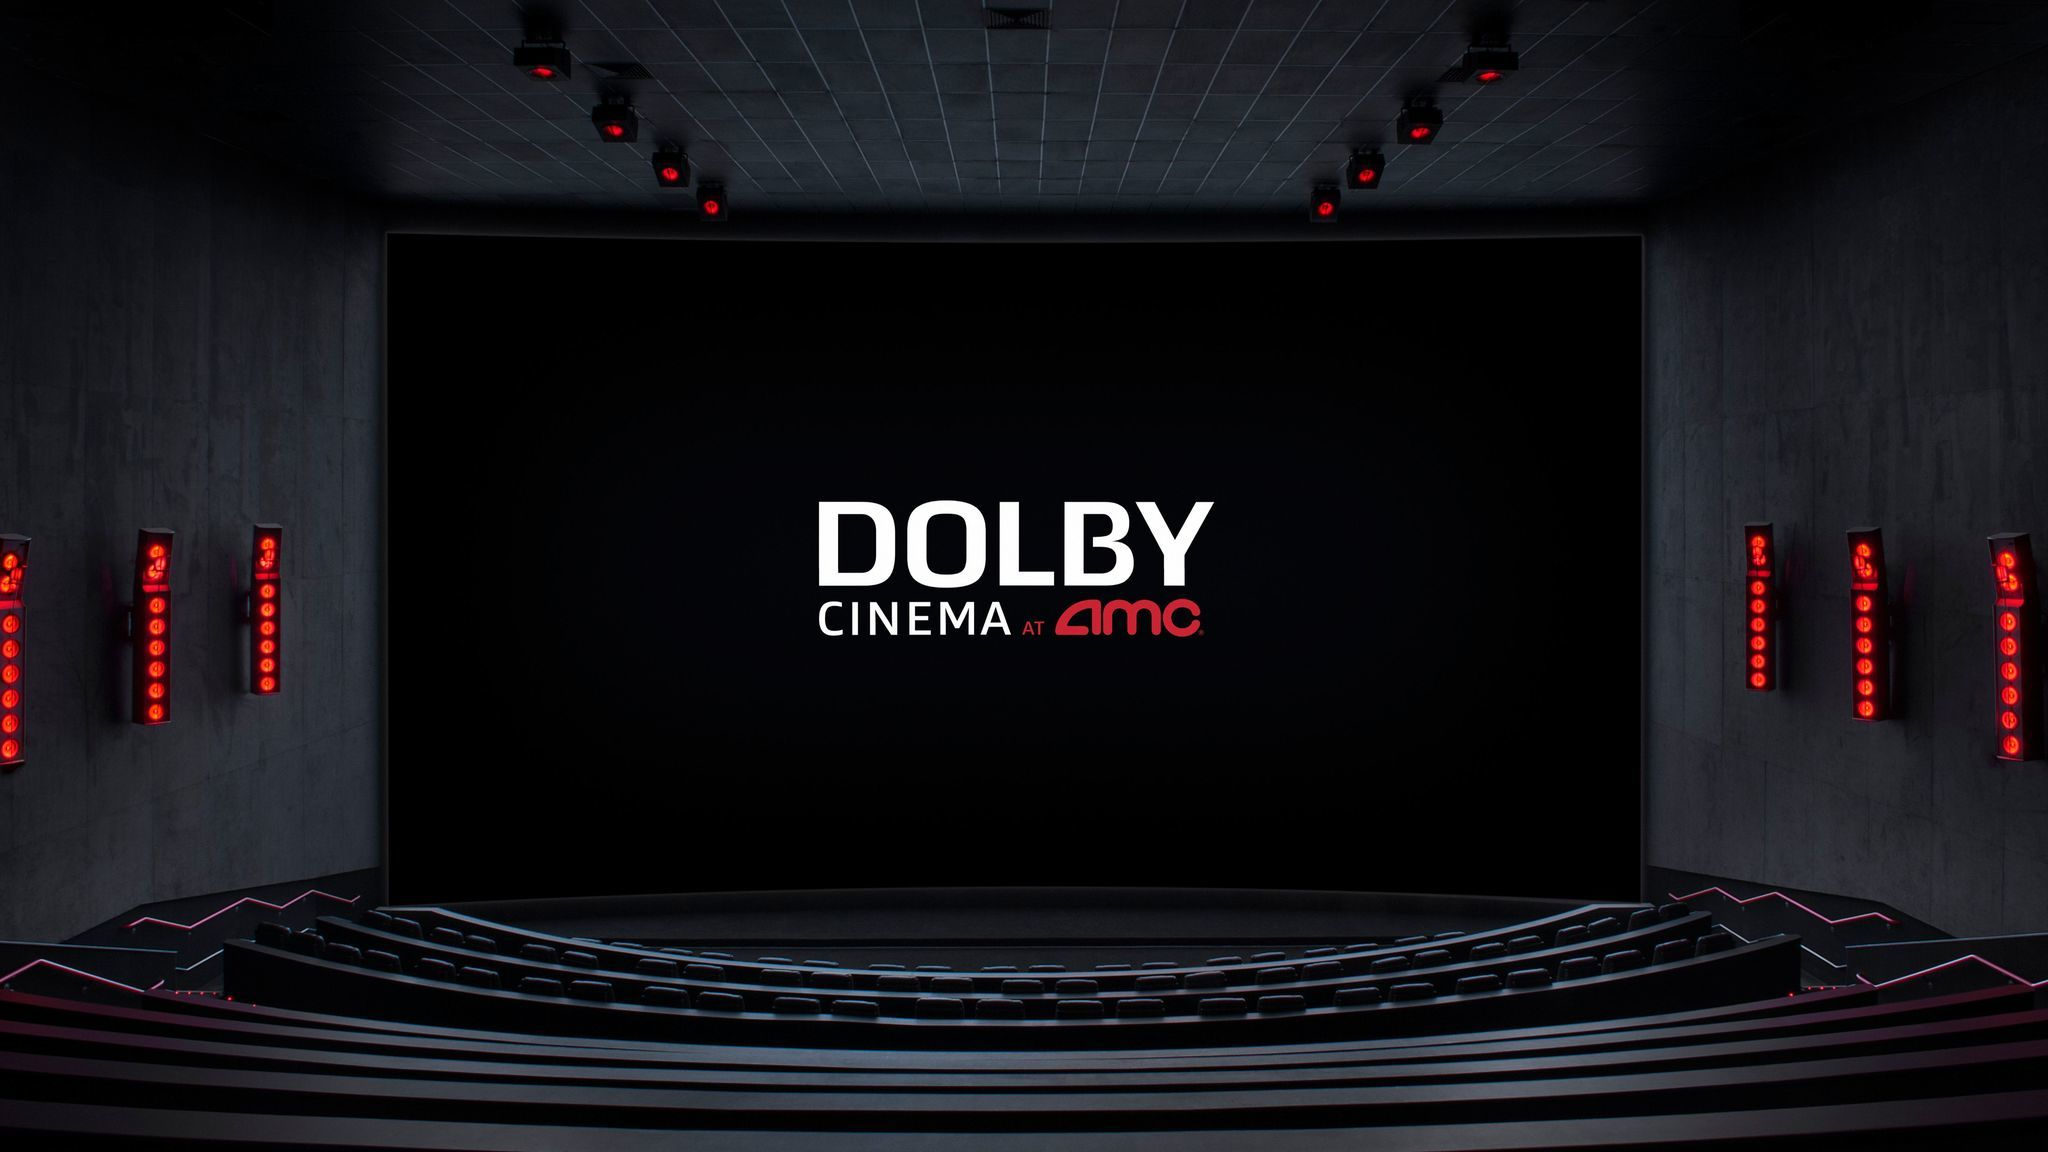 The Dolby Cinema at AMC in Burbank